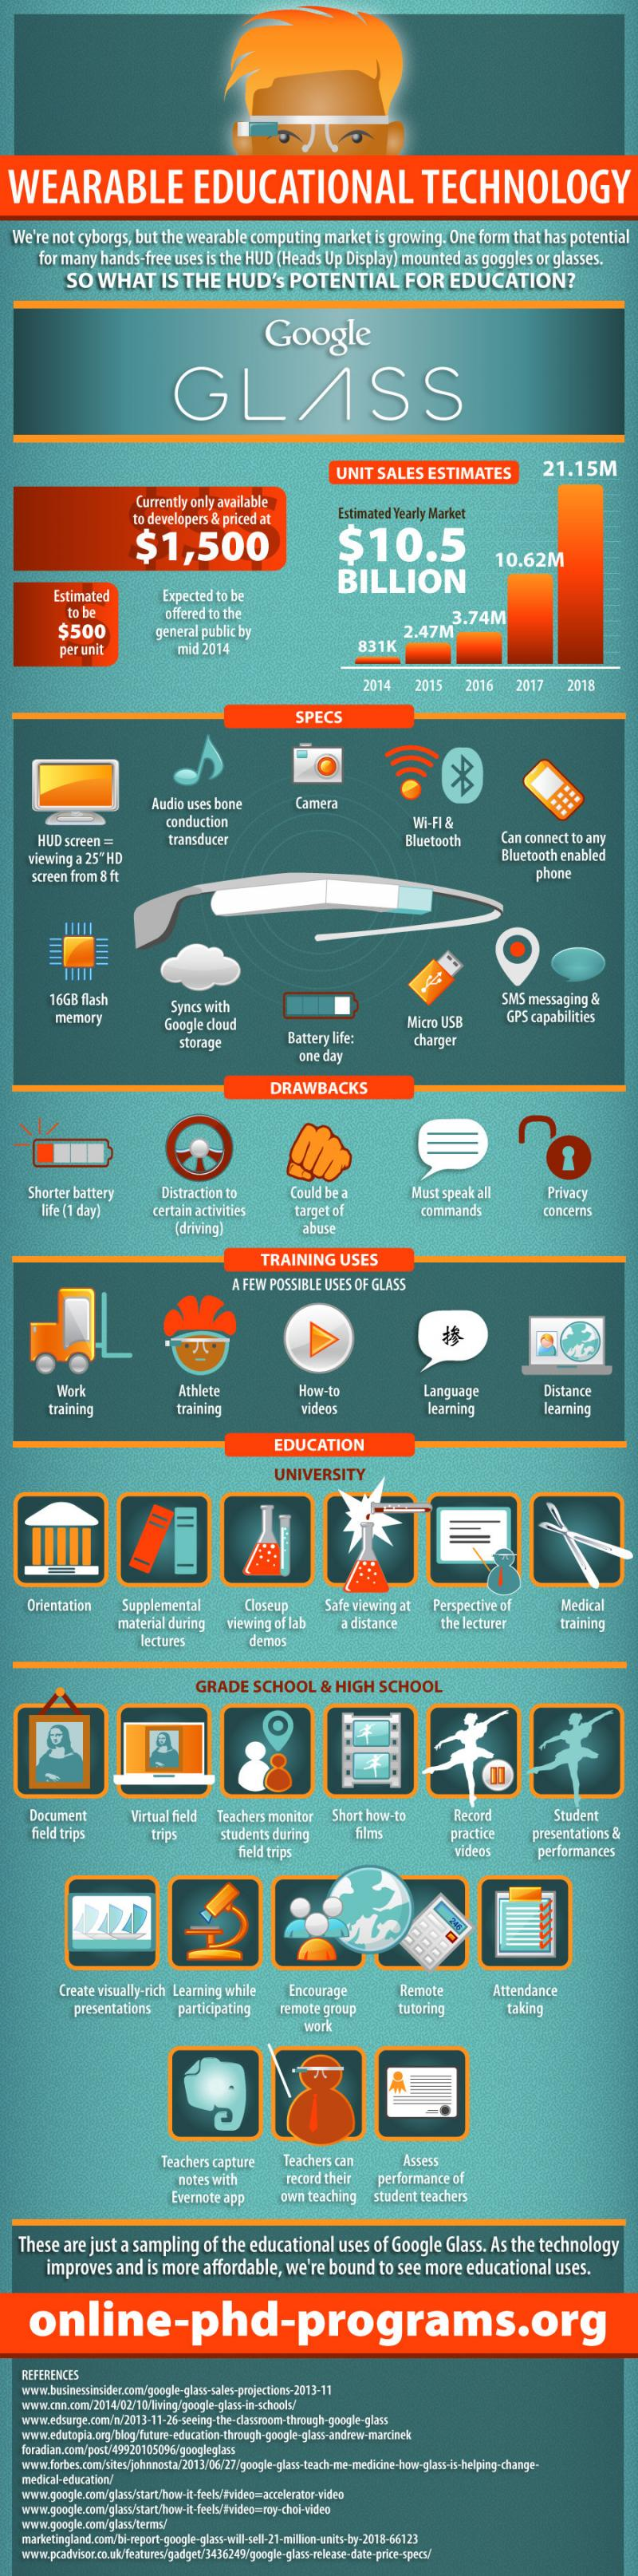 Could Wearable Technology Like Google Glass Play a Role in Connected Education? #Infographic